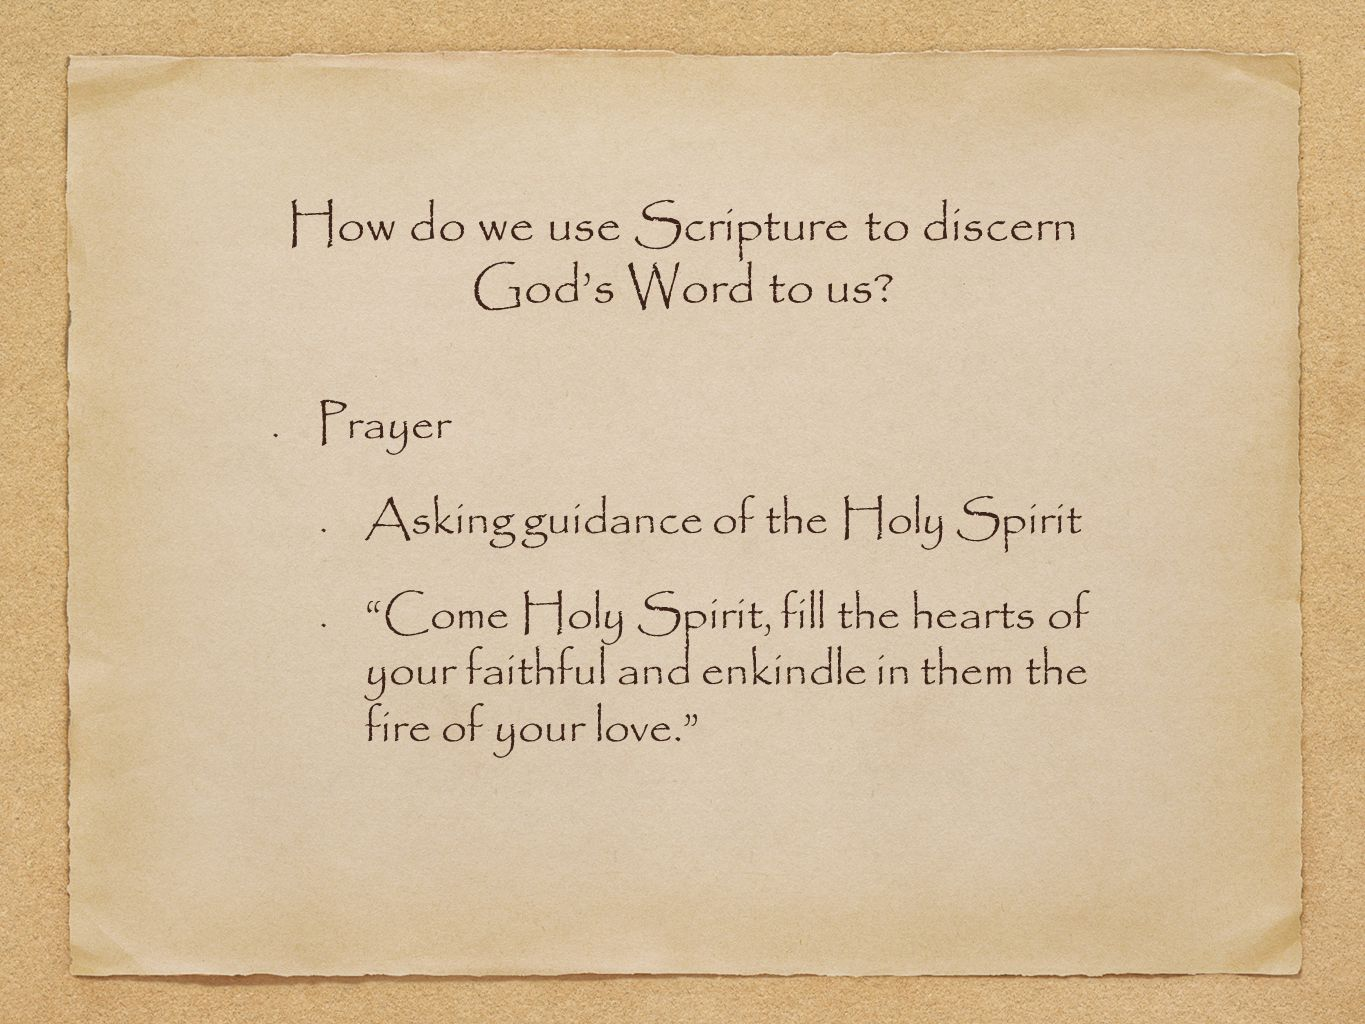 How do we use Scripture to discern God's Word to us.